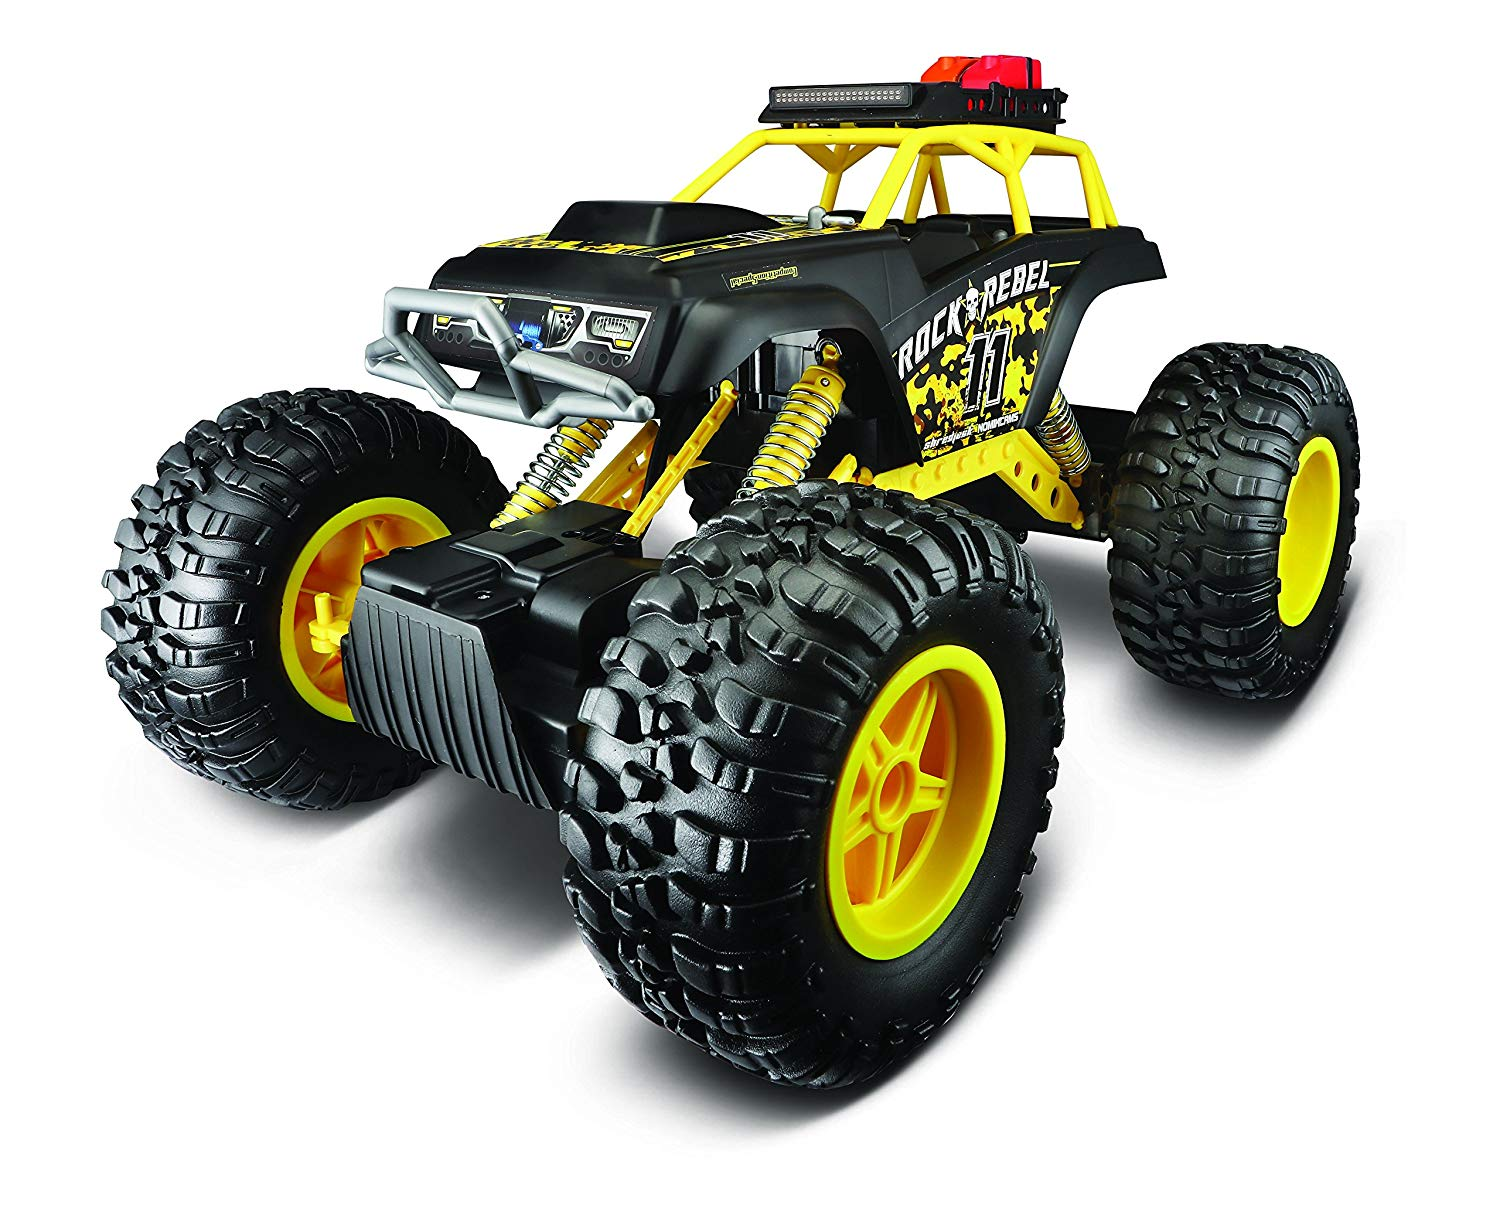 Maisto Rock Crawler 3XL 4WD R/C Vehicle